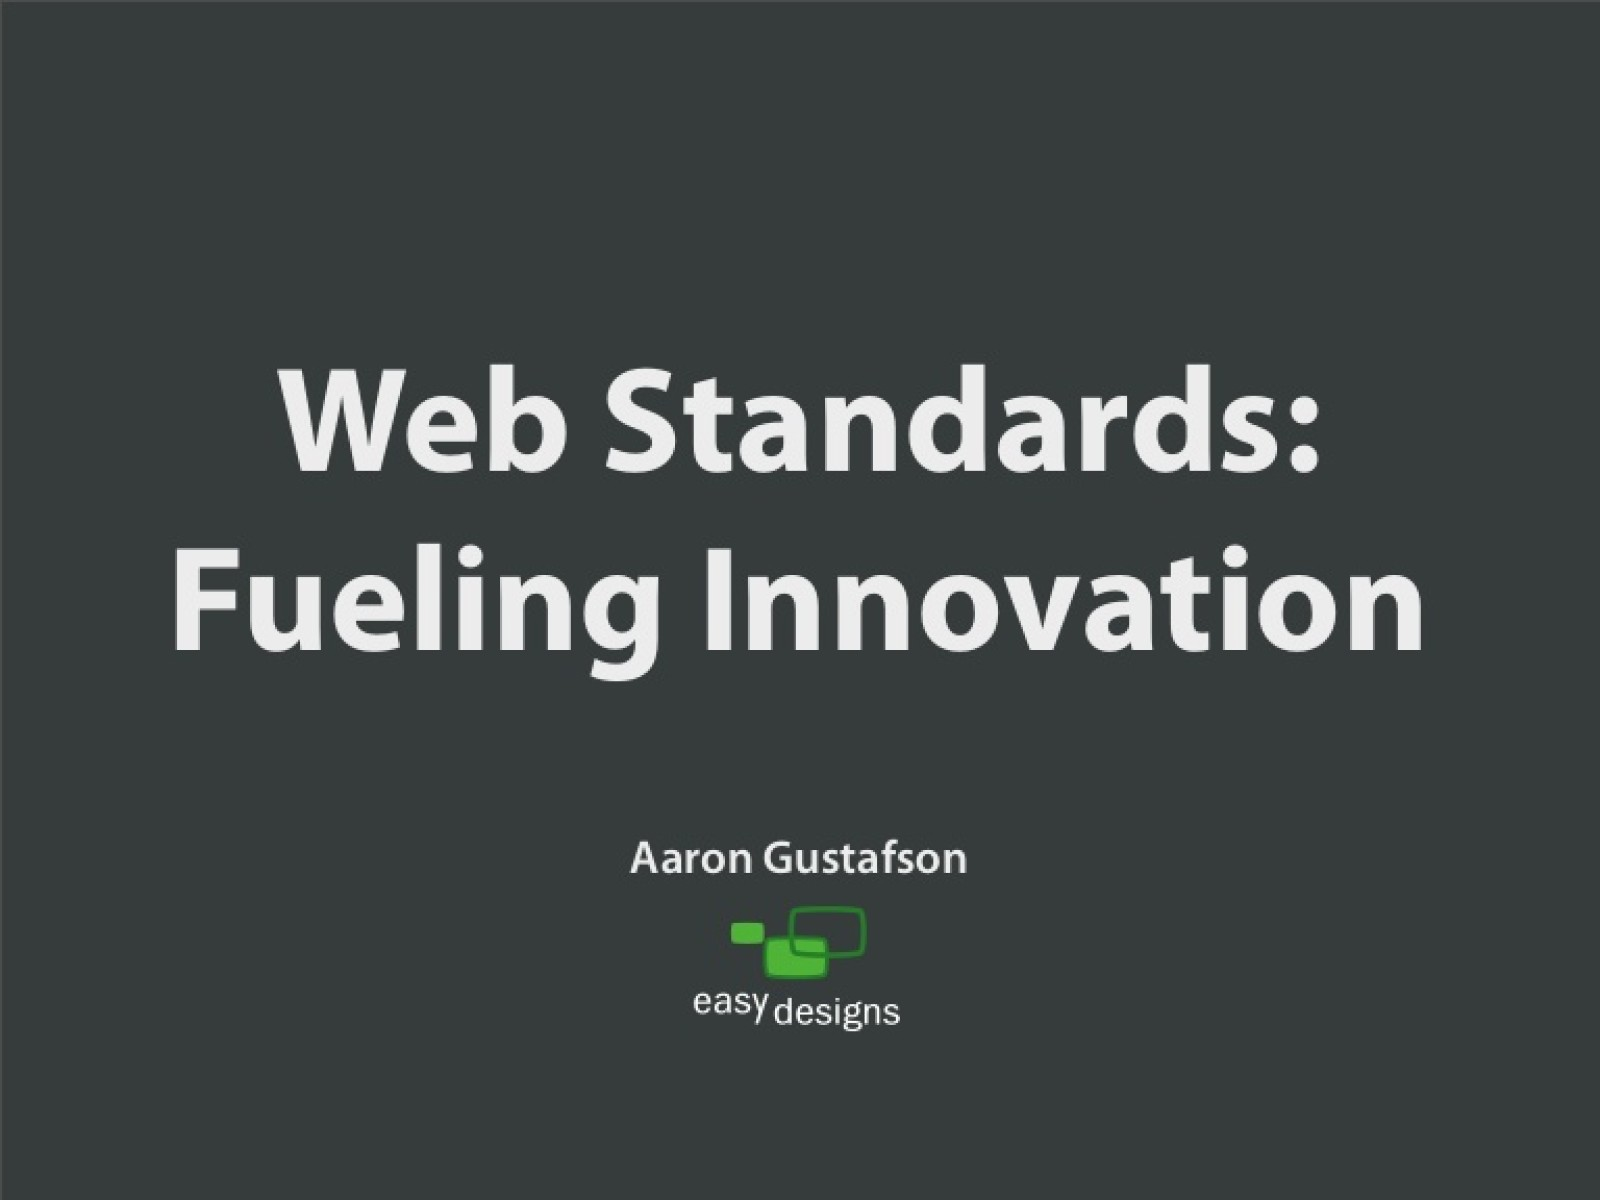 Web Standards: Fueling Innovation